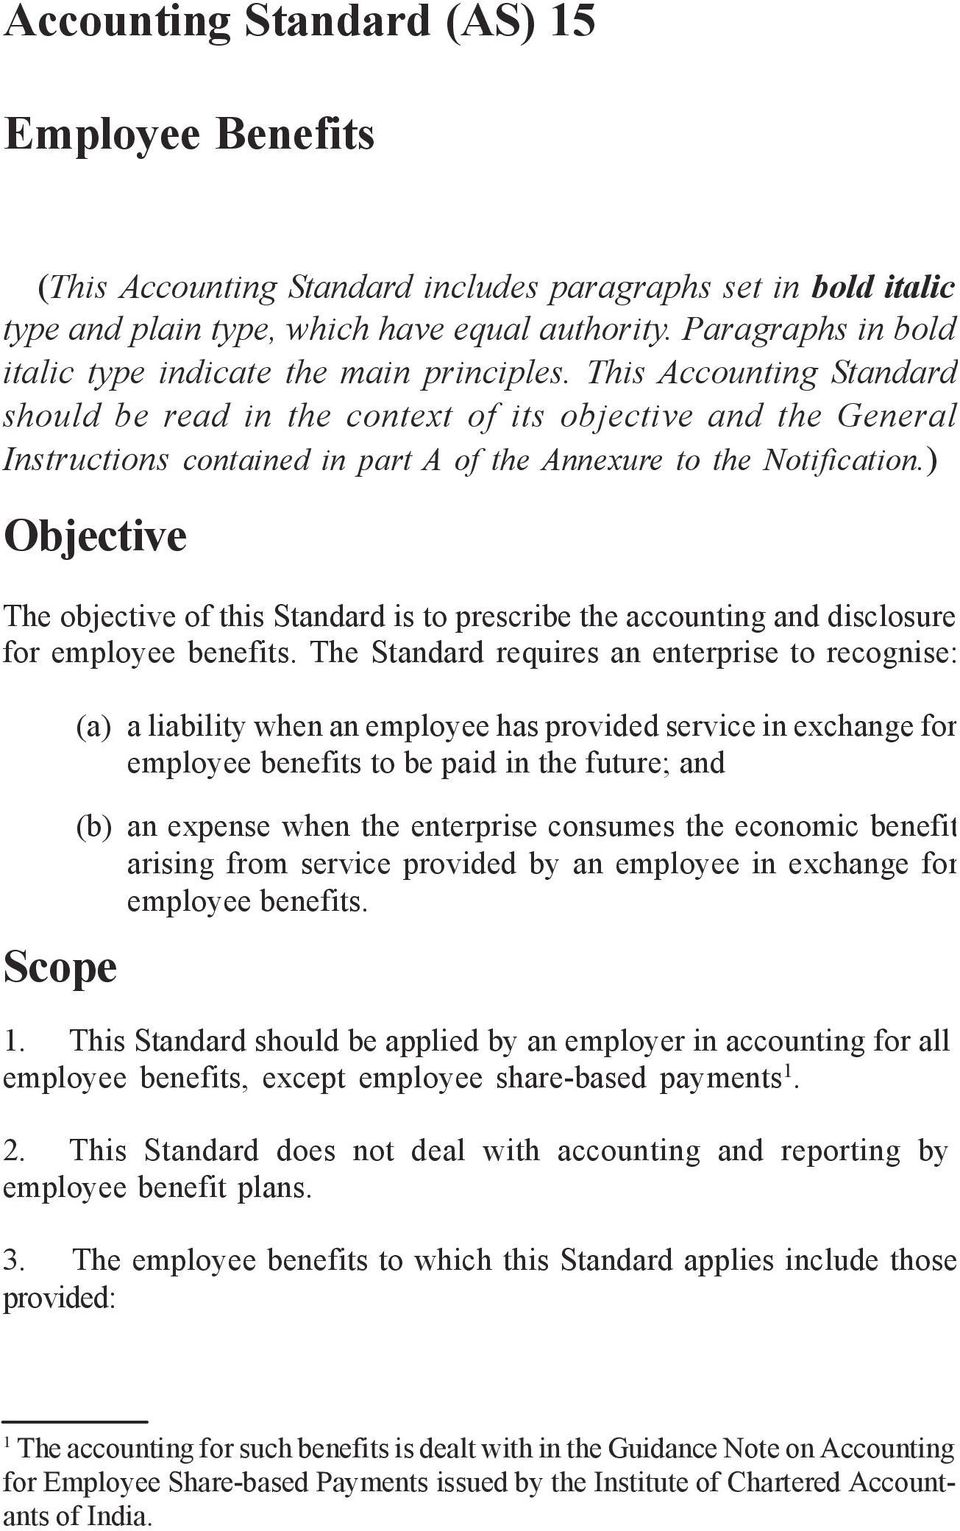 This Accounting Standard should be read in the context of its objective and the General Instructions contained in part A of the Annexure to the Notification.